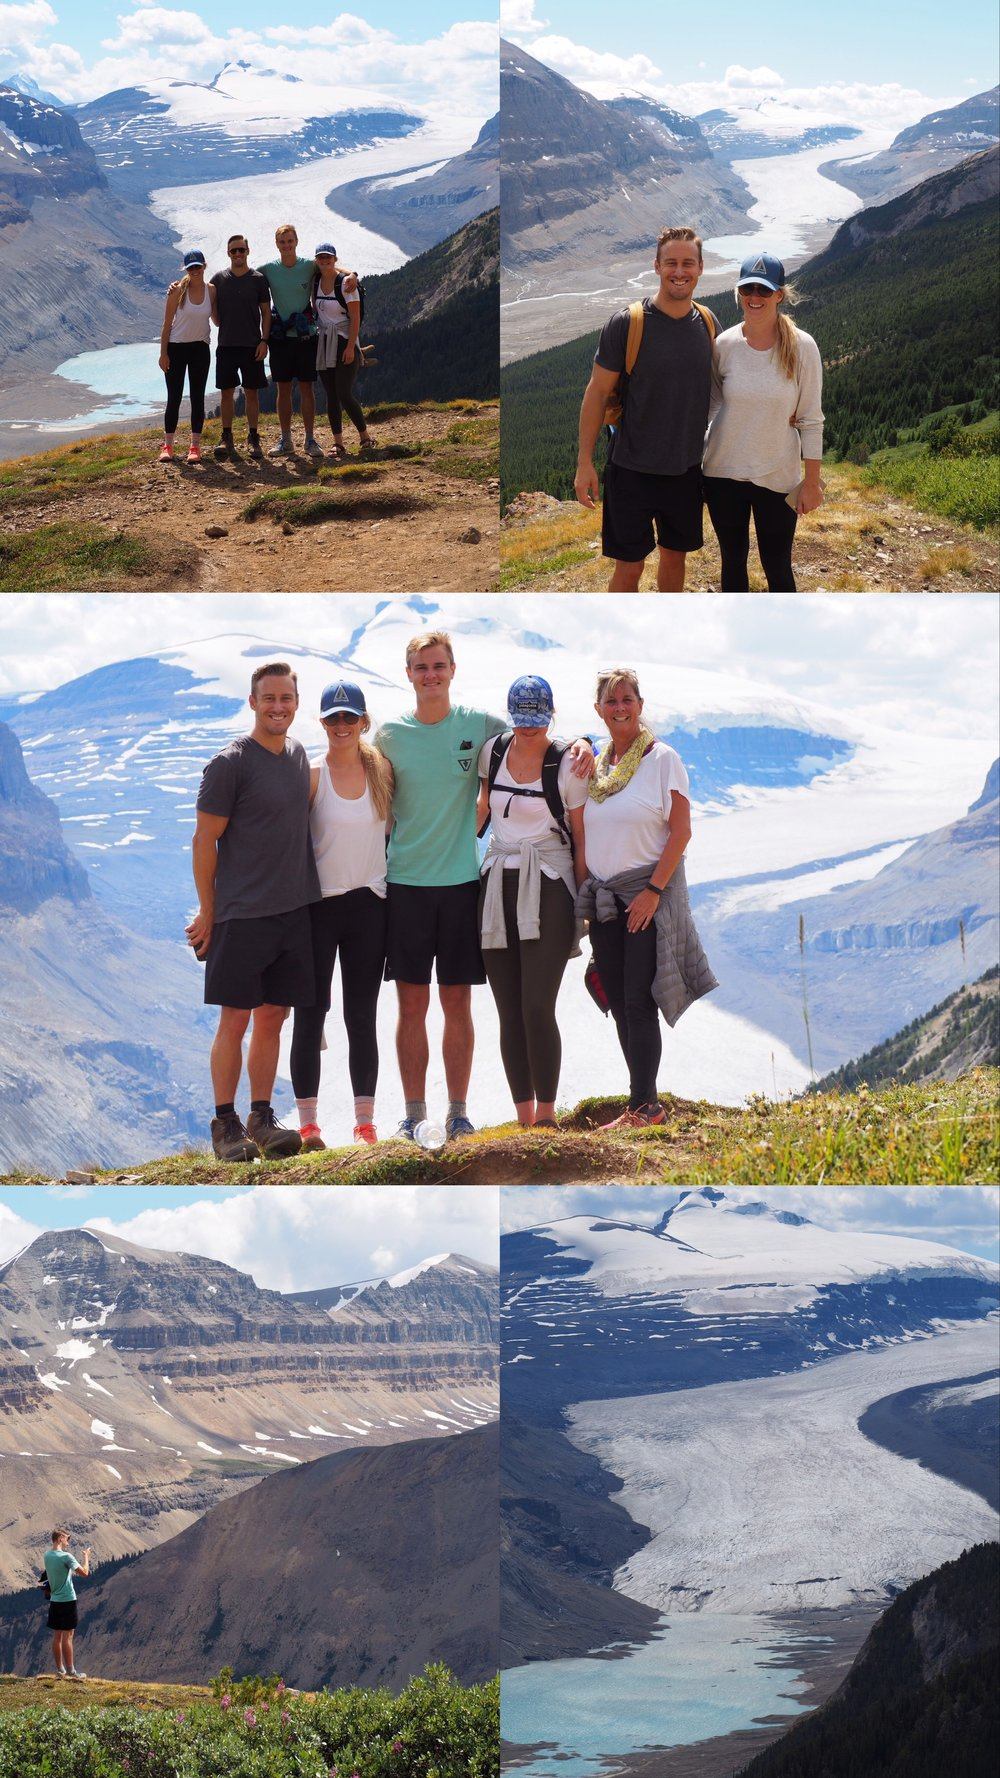 hike up to Parker Ridge and views of the Columbia Icefield glacier